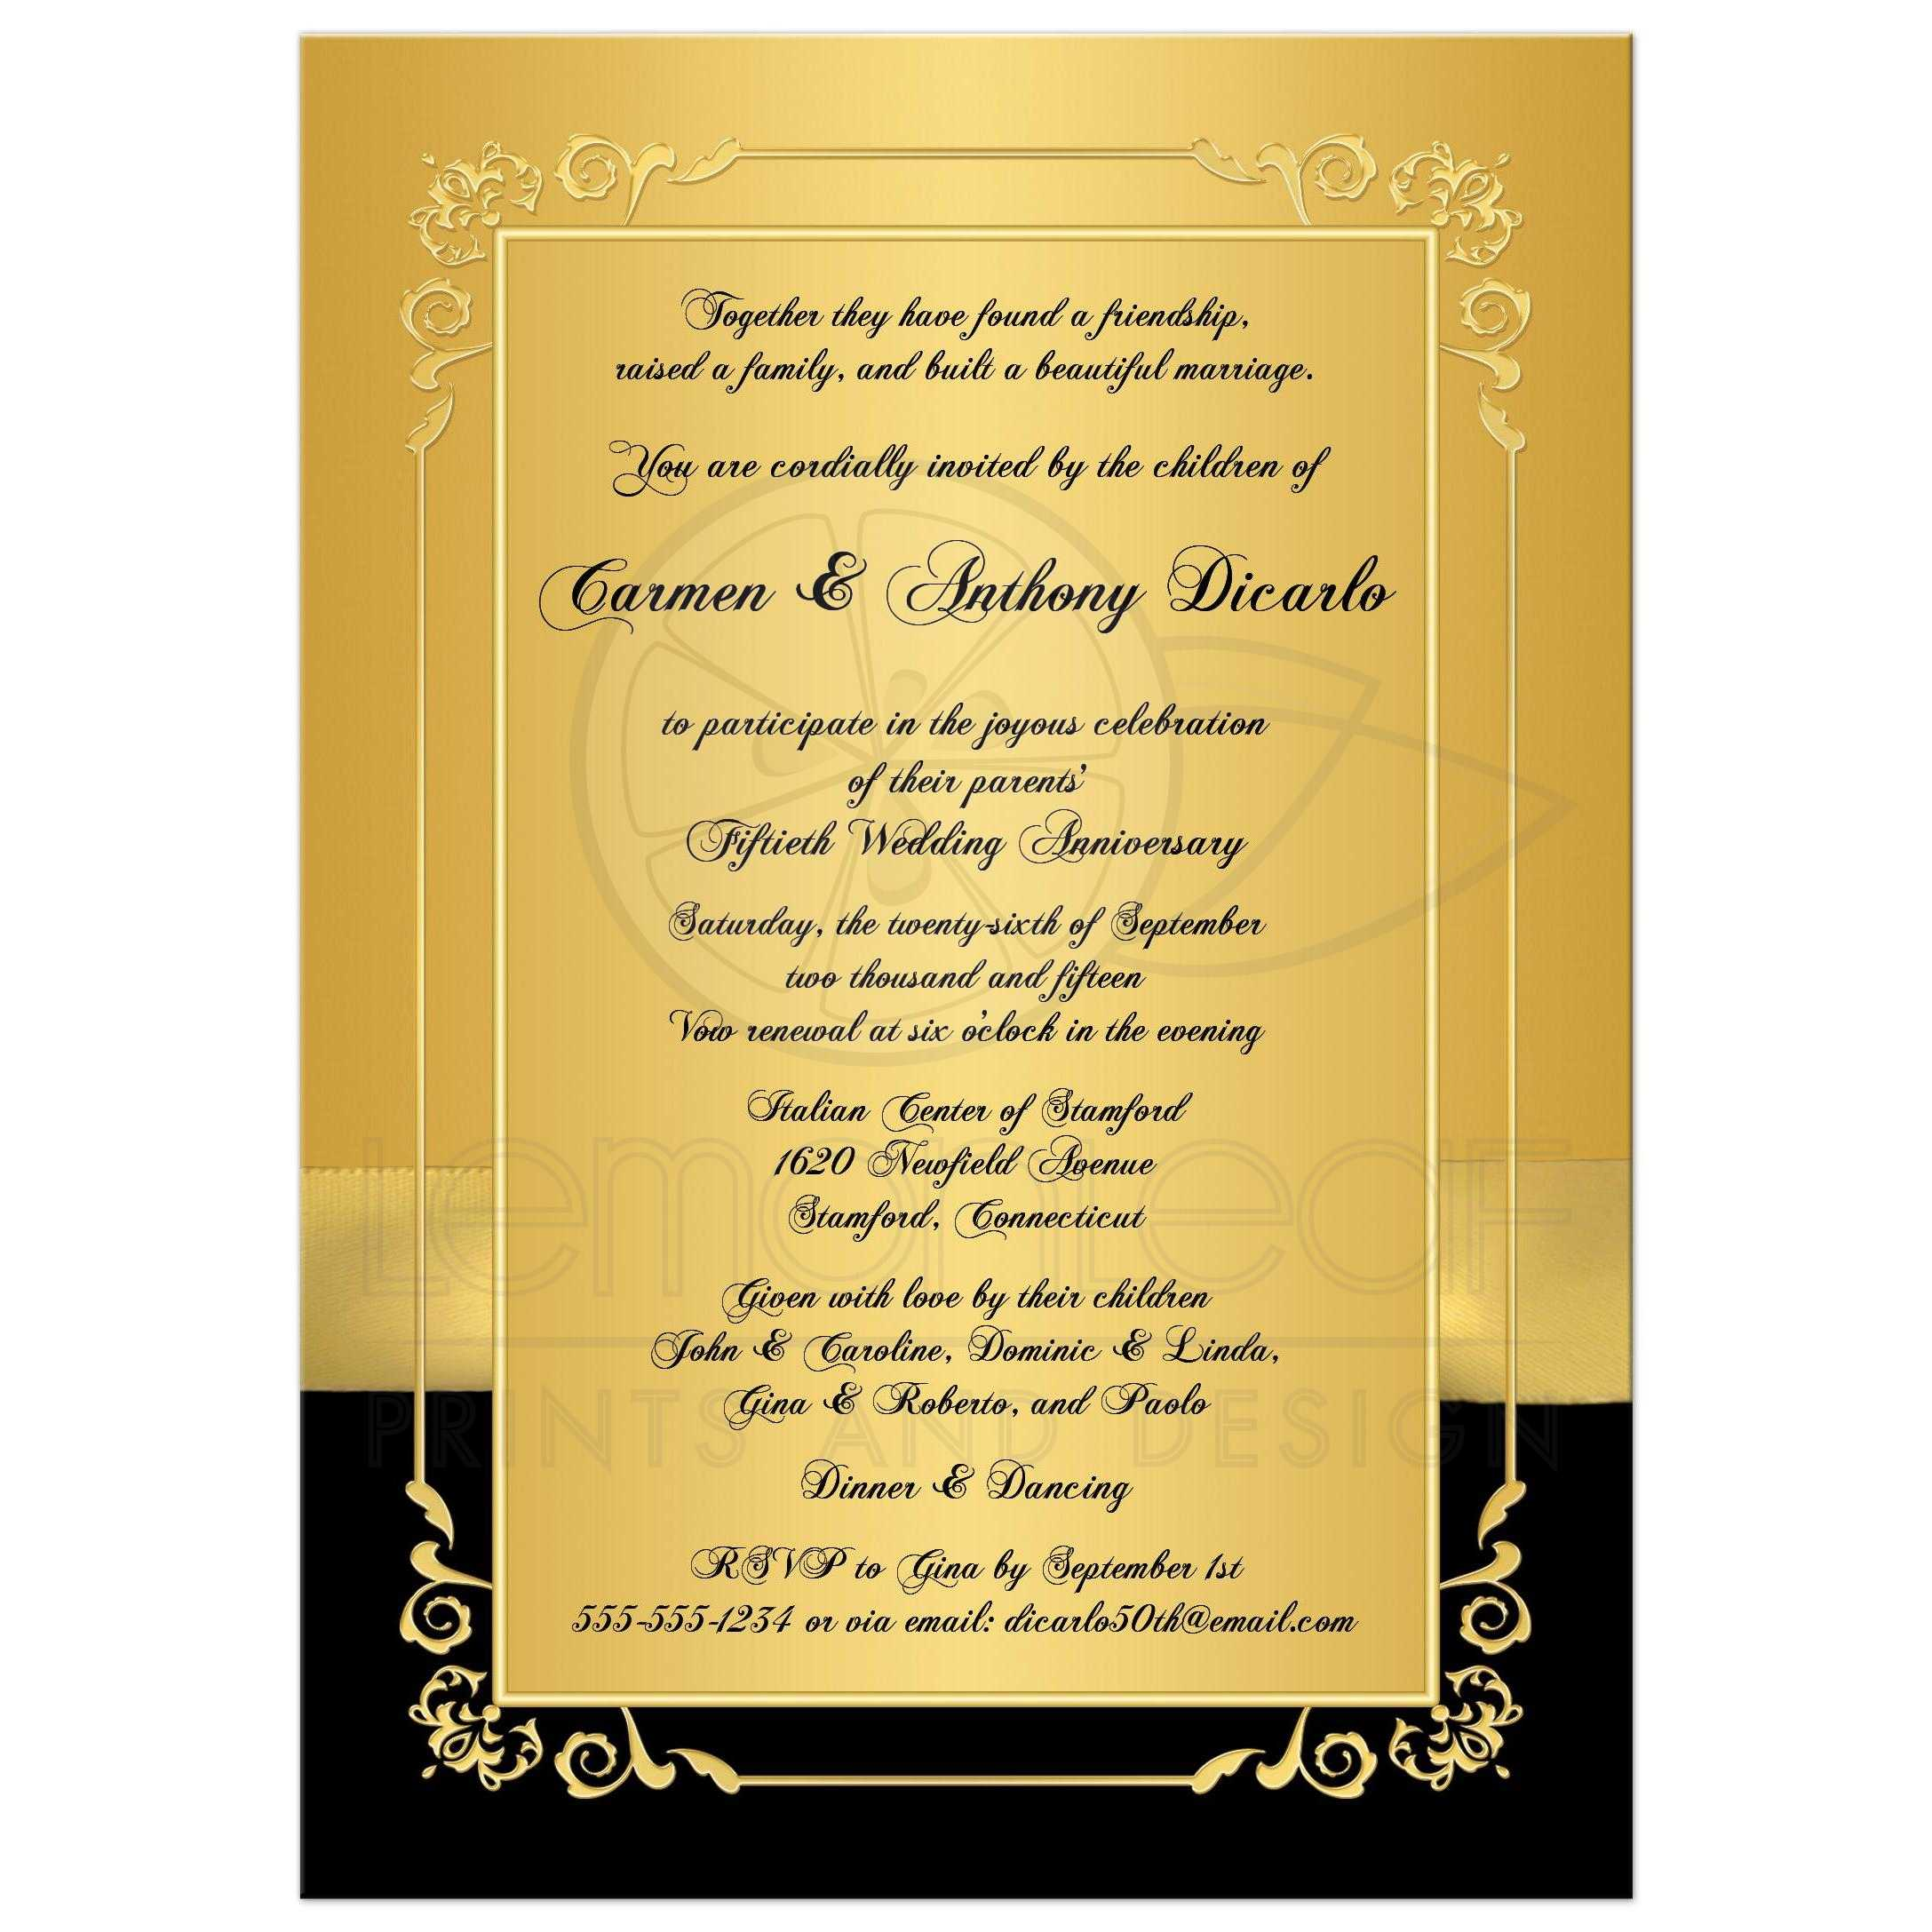 50th Wedding Anniversary Invitation Black and Gold Floral